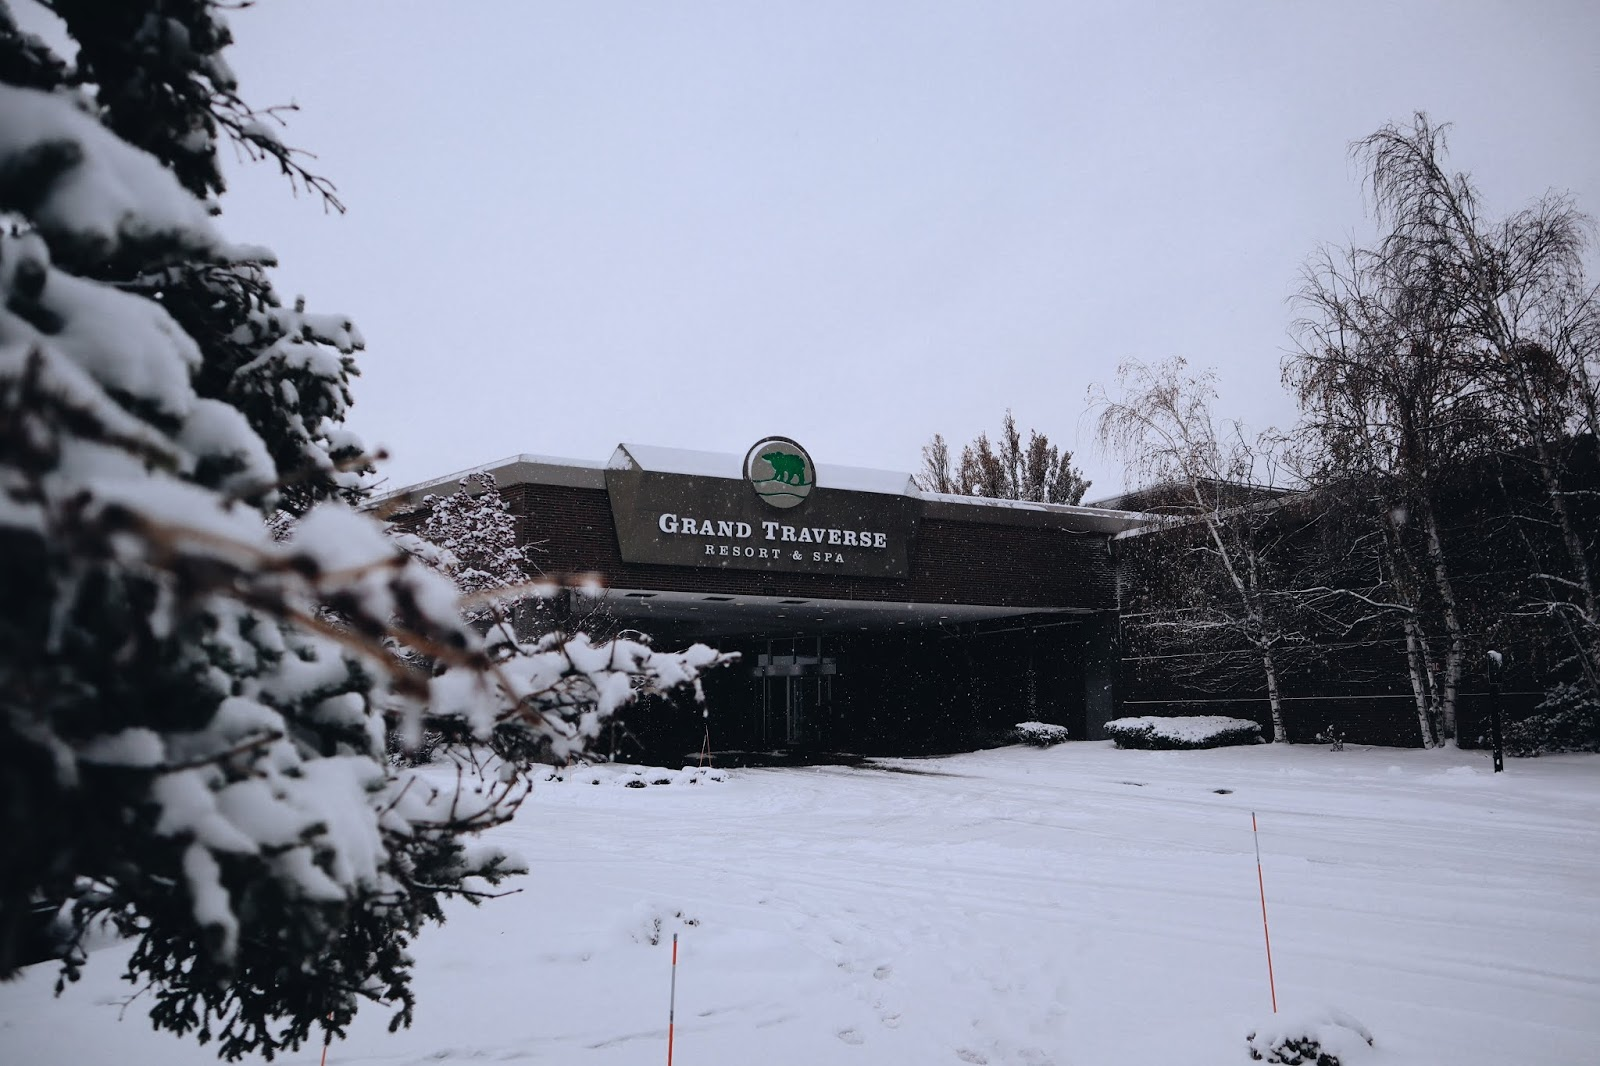 Grand Traverse Resort & Spa